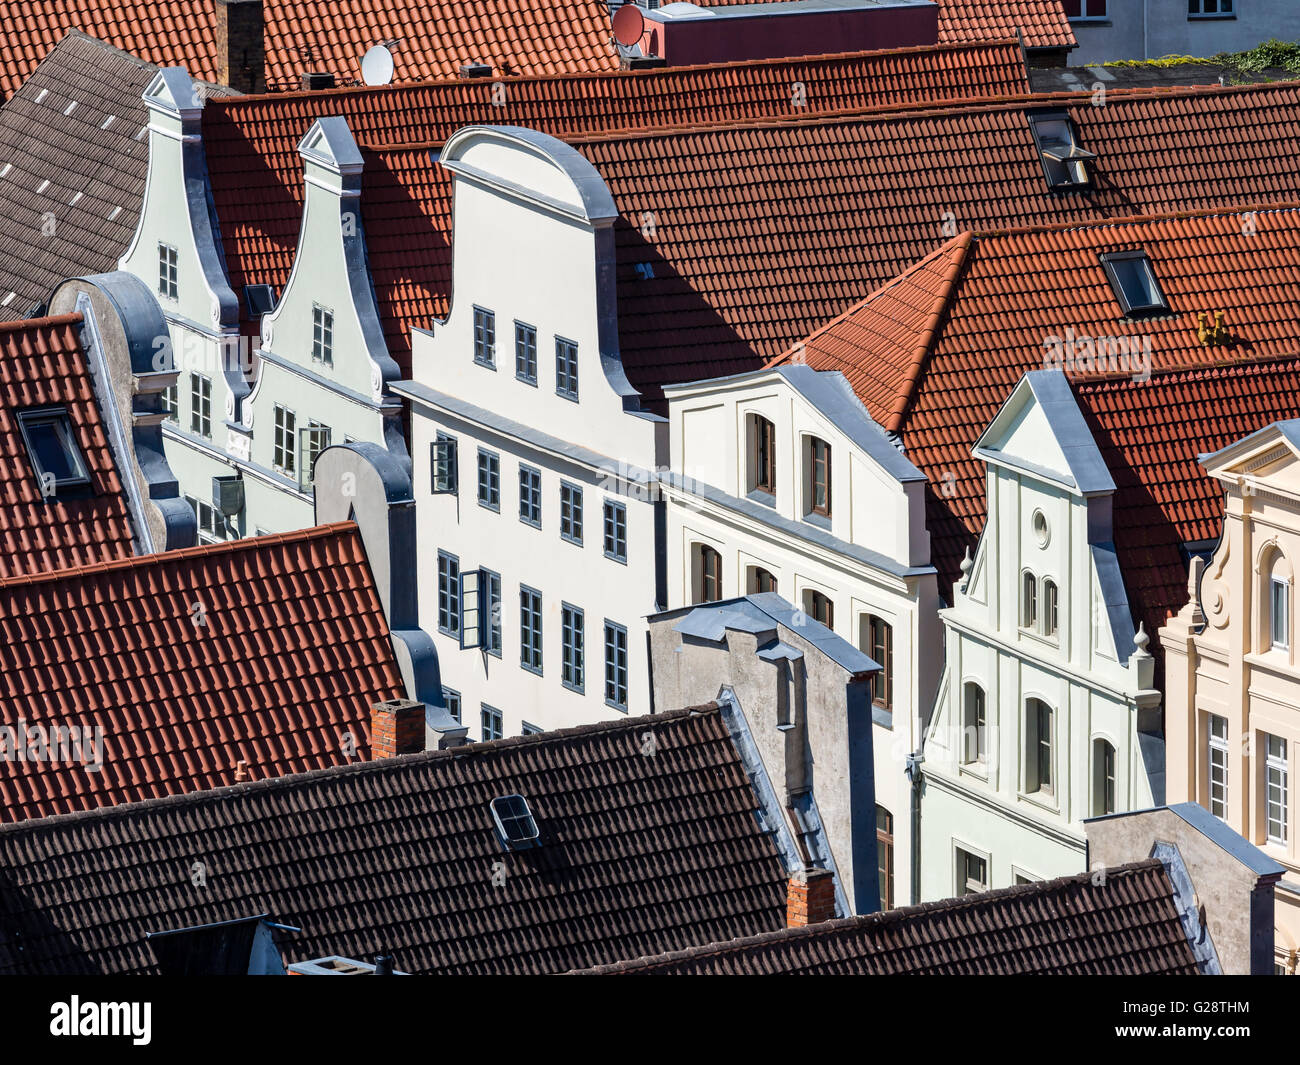 Historic downtown, seen from platform of St. Georgen church, Wismar, Germany. - Stock Image